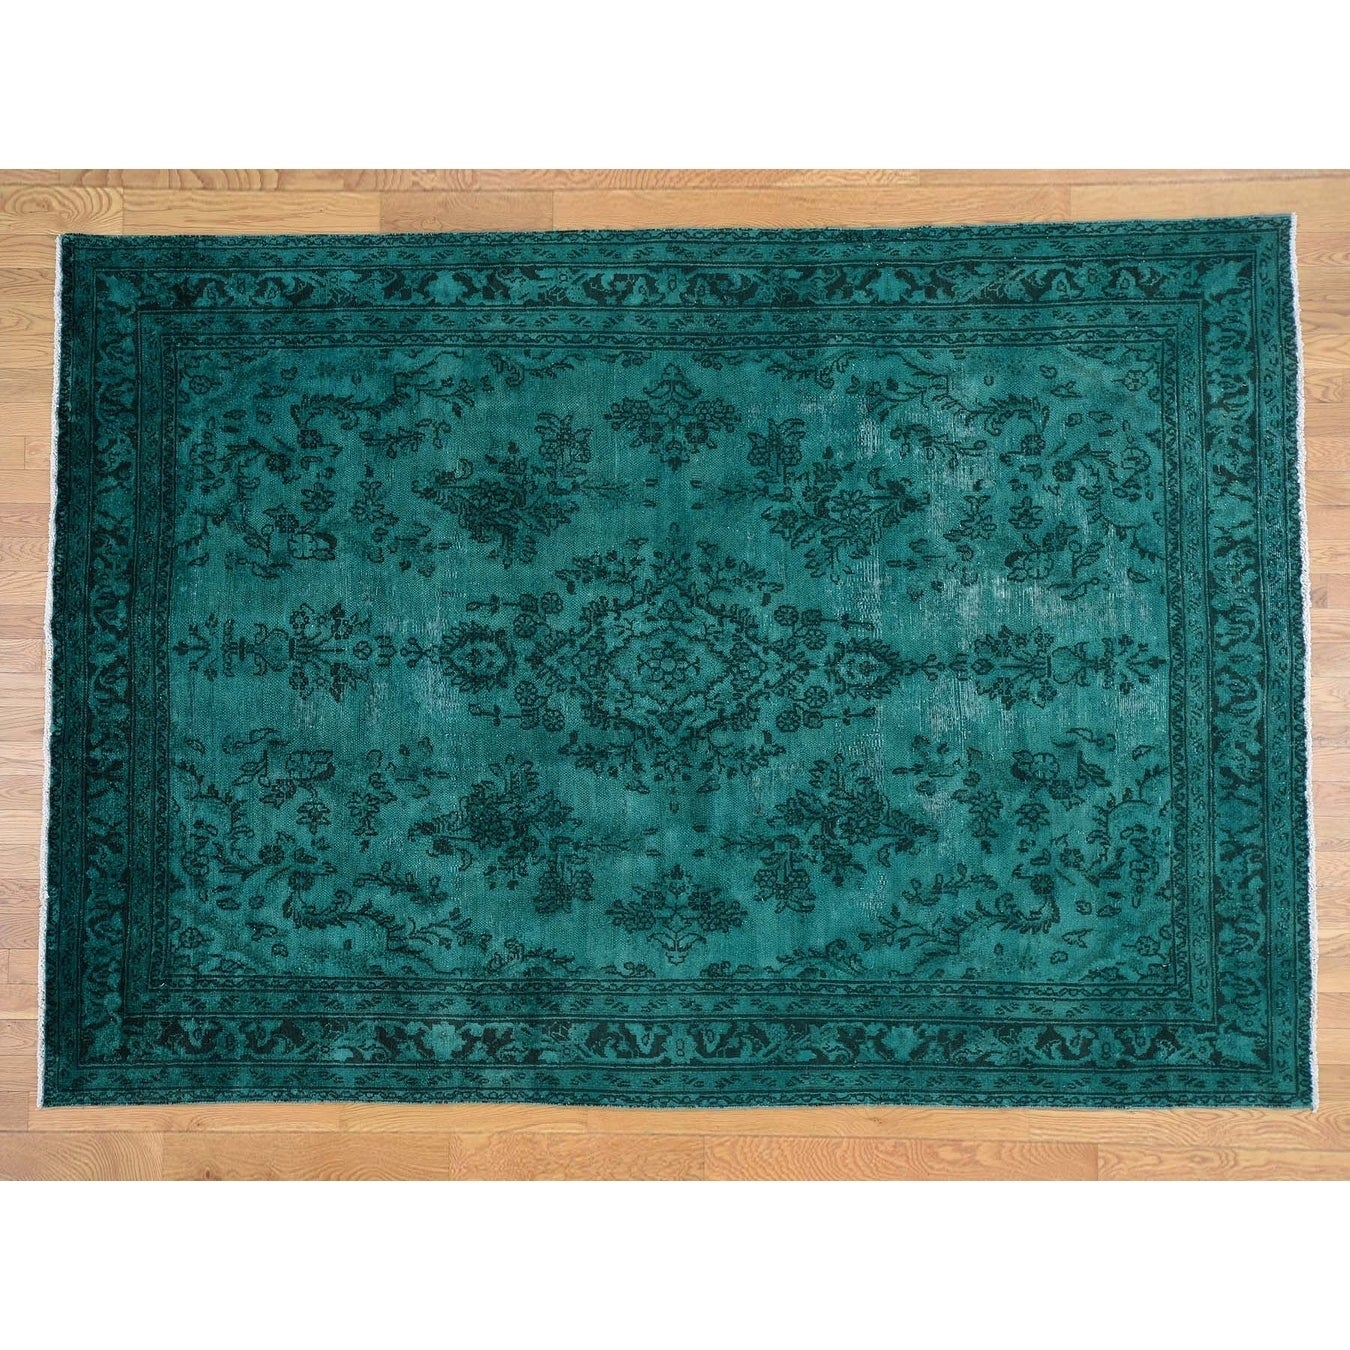 Hand Knotted Teal Overdyed & Vintage with Wool Oriental Rug - 7 x 910